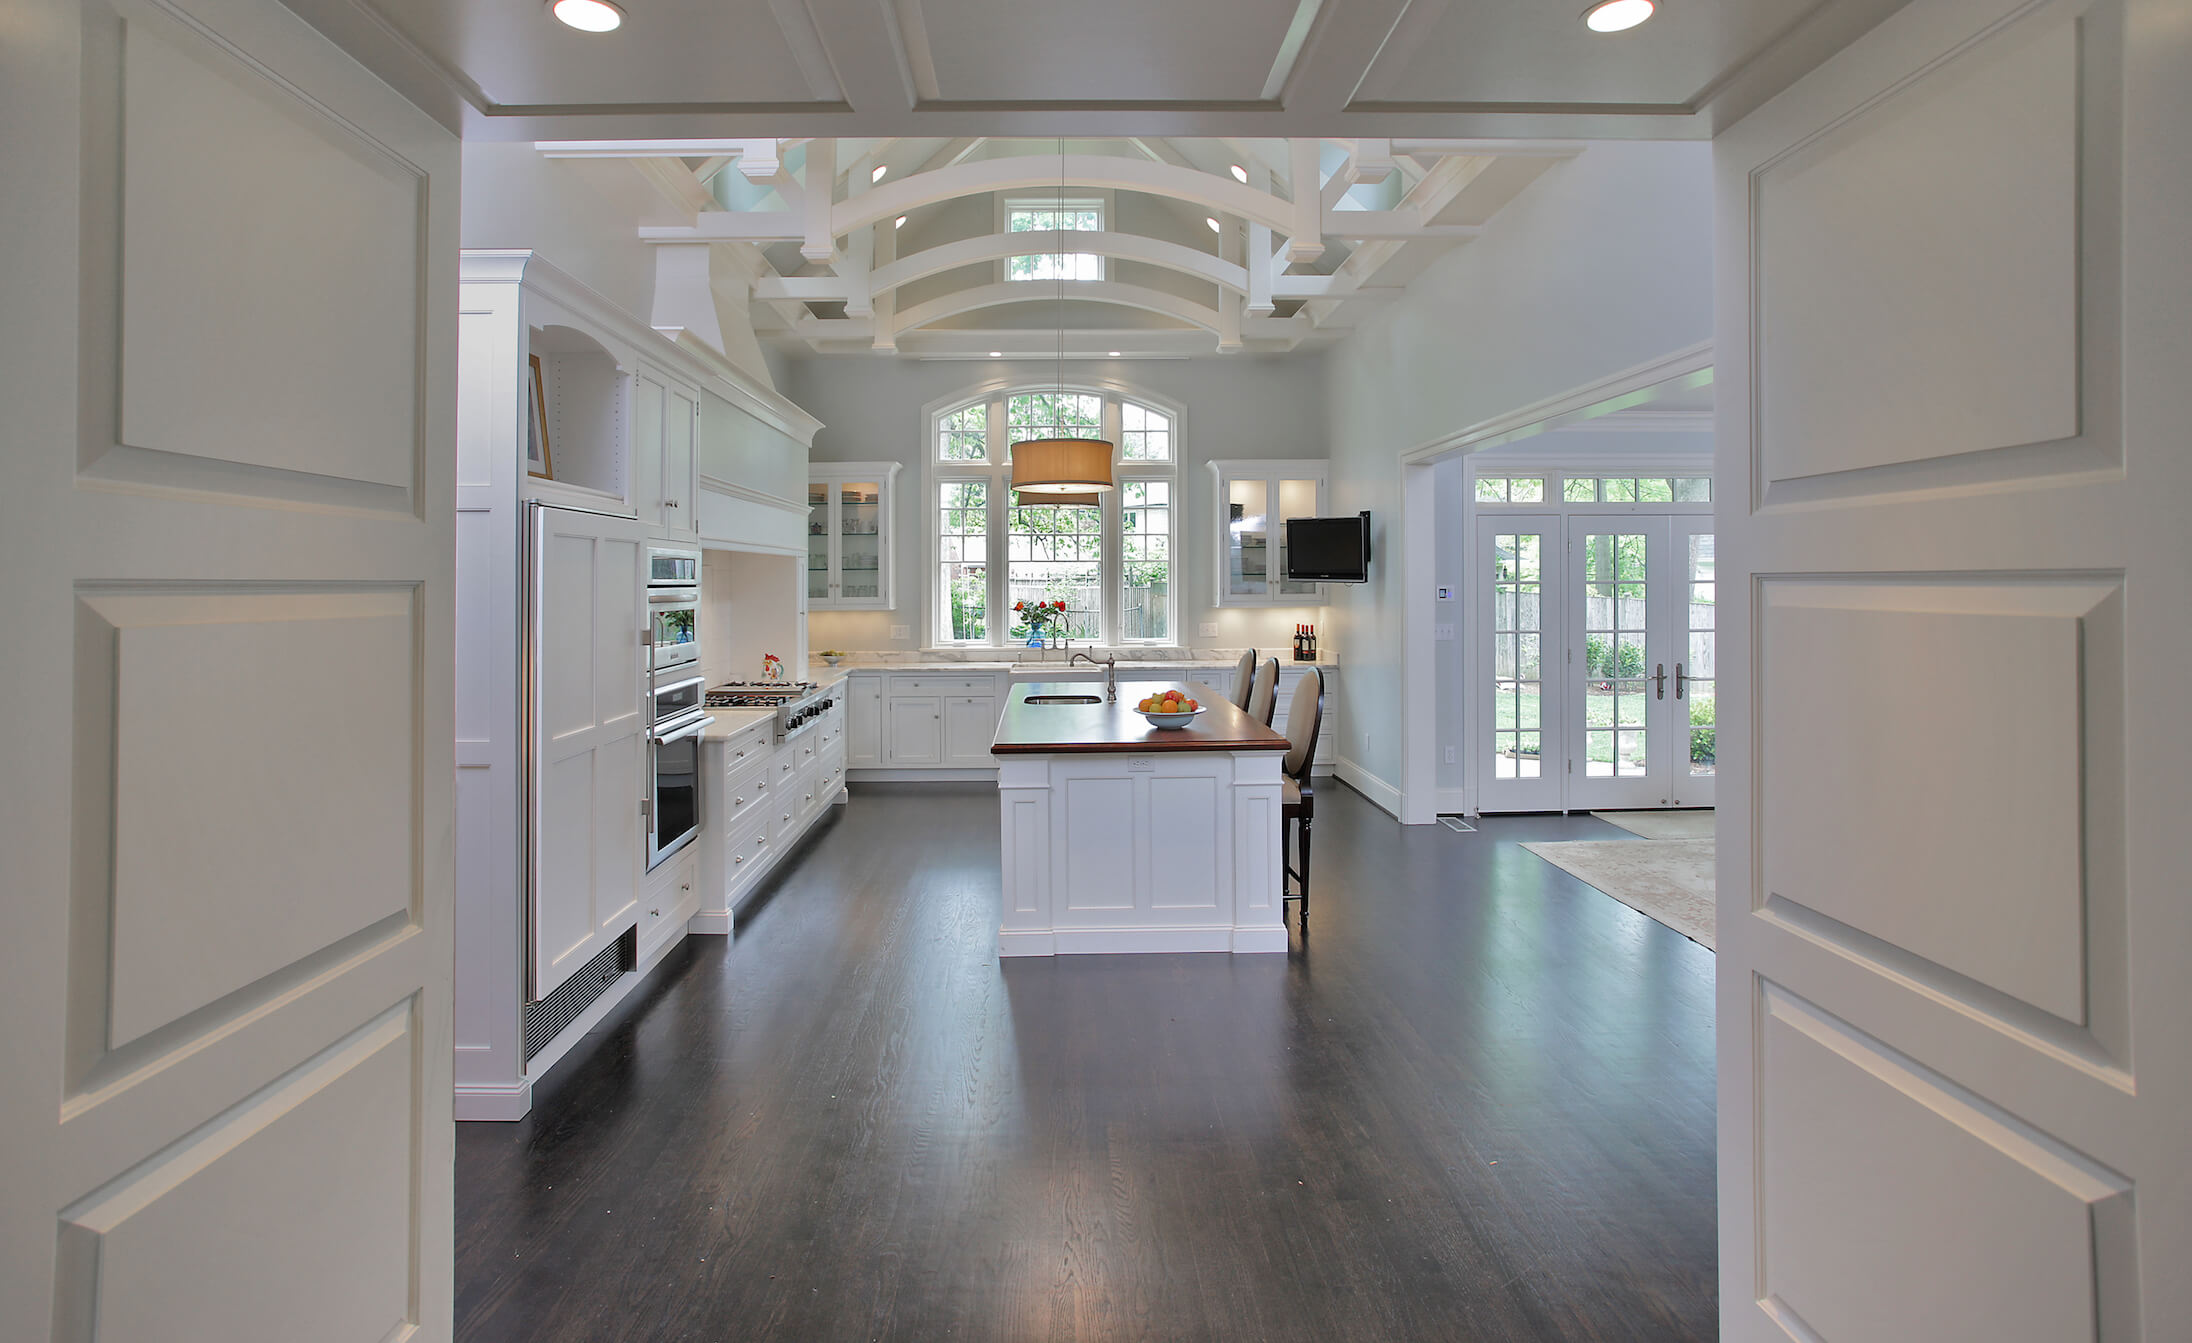 Viewing the kitchen through an entry hall, we see a wide swath of dark hardwood flooring, contrasting with the white cabinetry and walls.